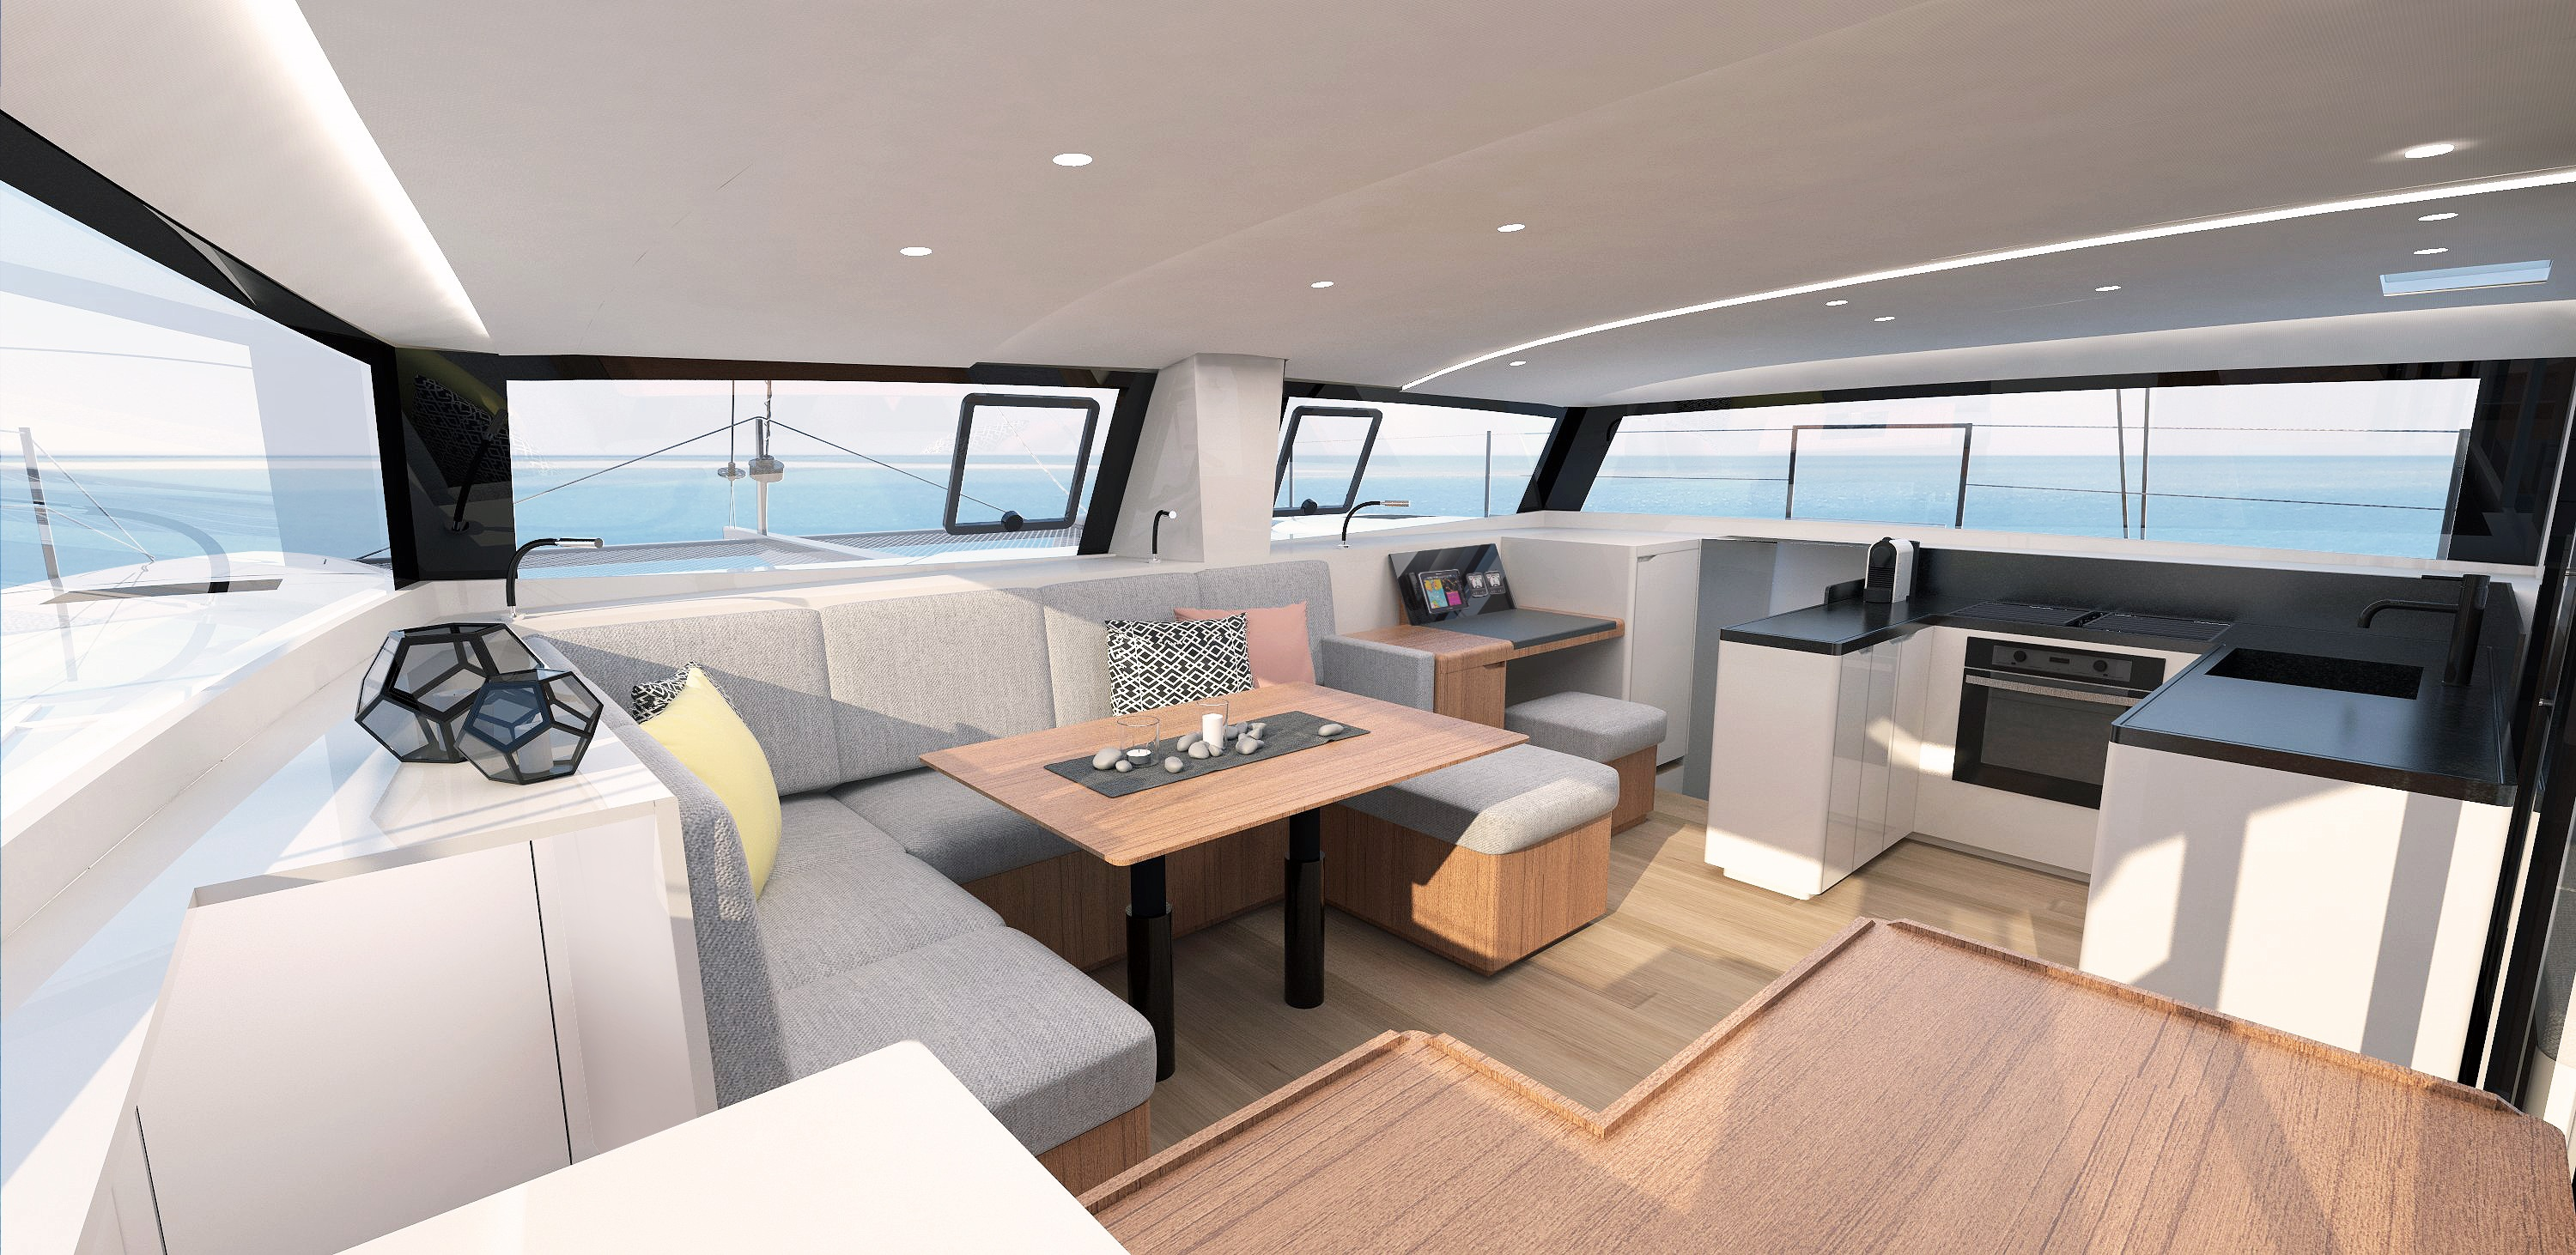 Performance cruisers: the best new catamarans for racing and fast